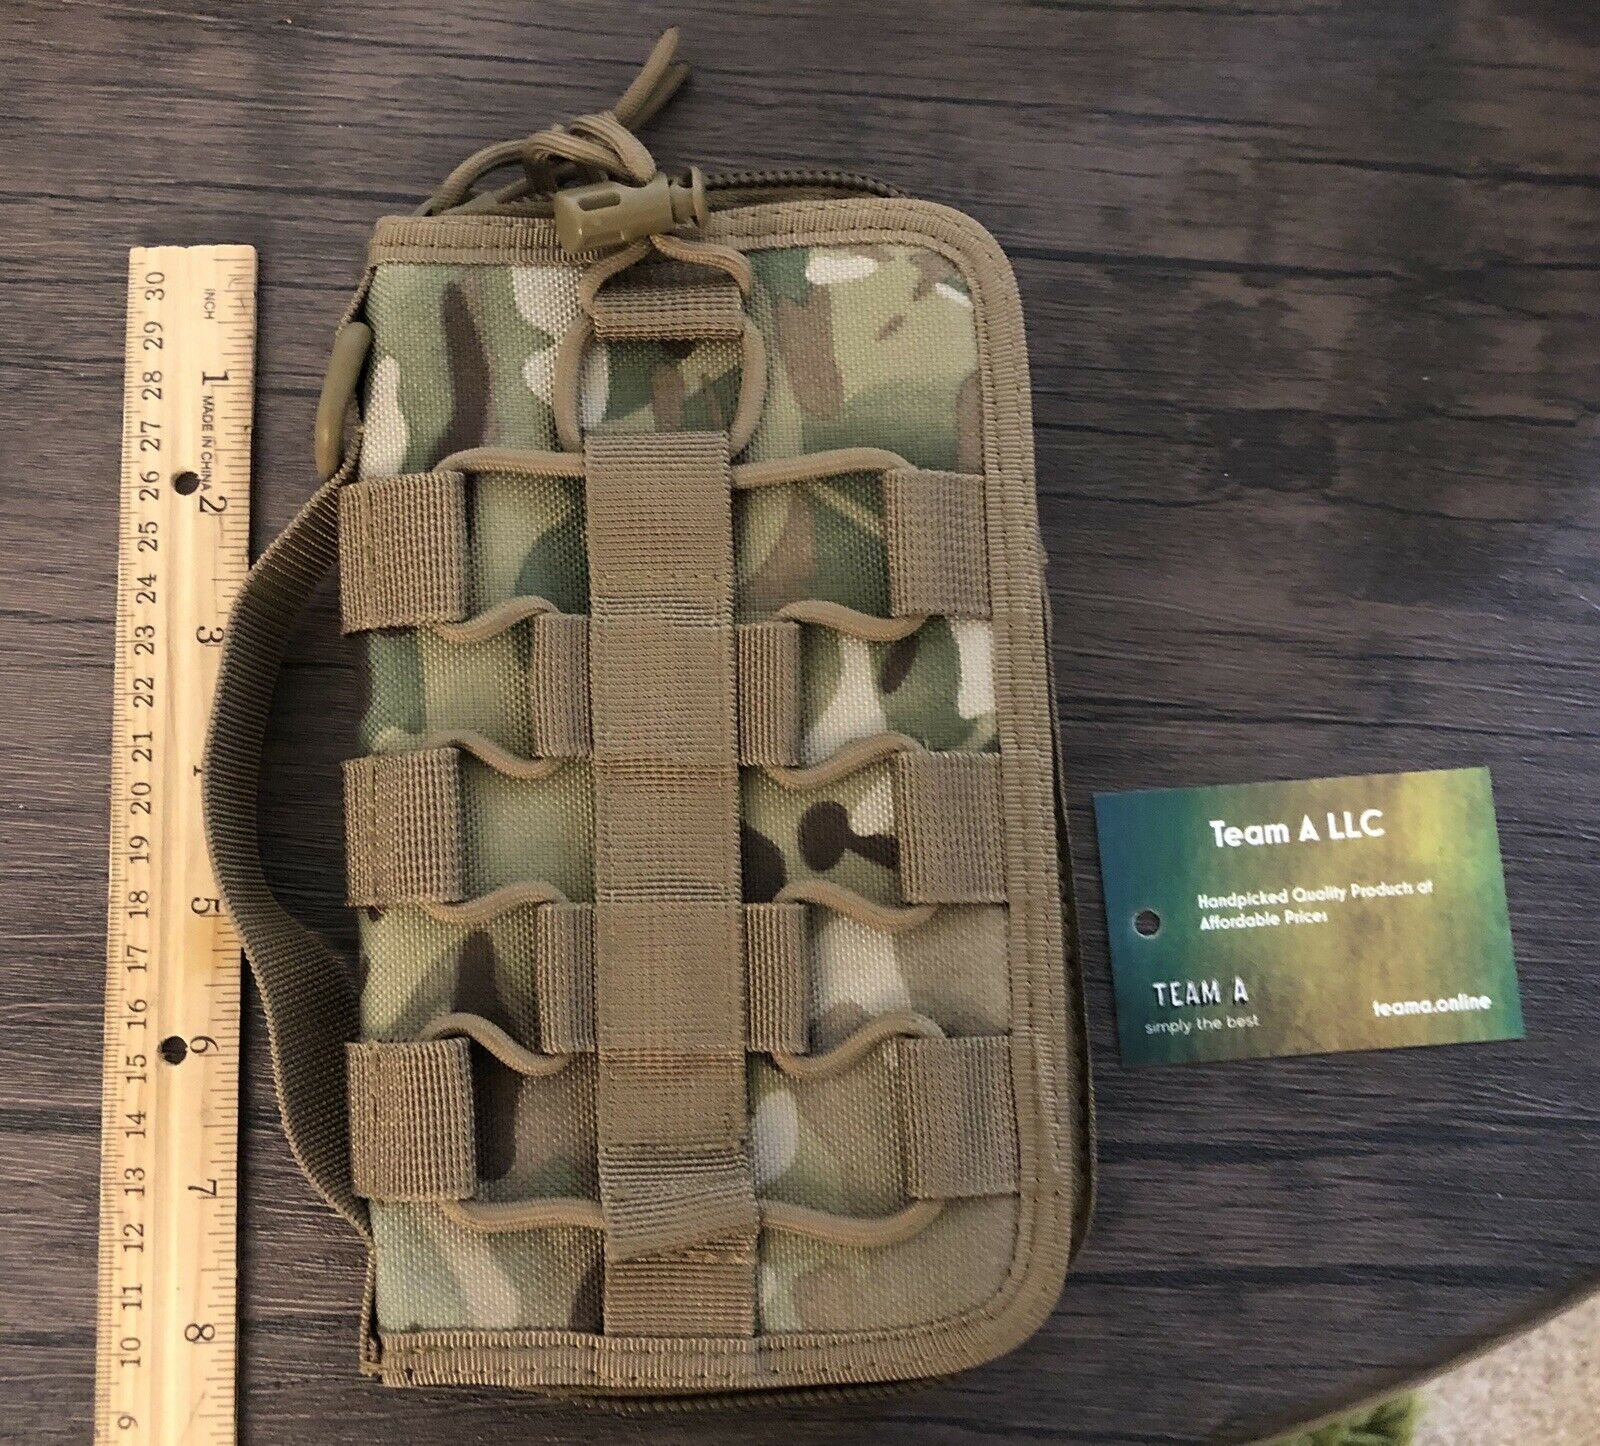 Heavy Duty Tactical Wallet And Passport Holder - Camouflage Green